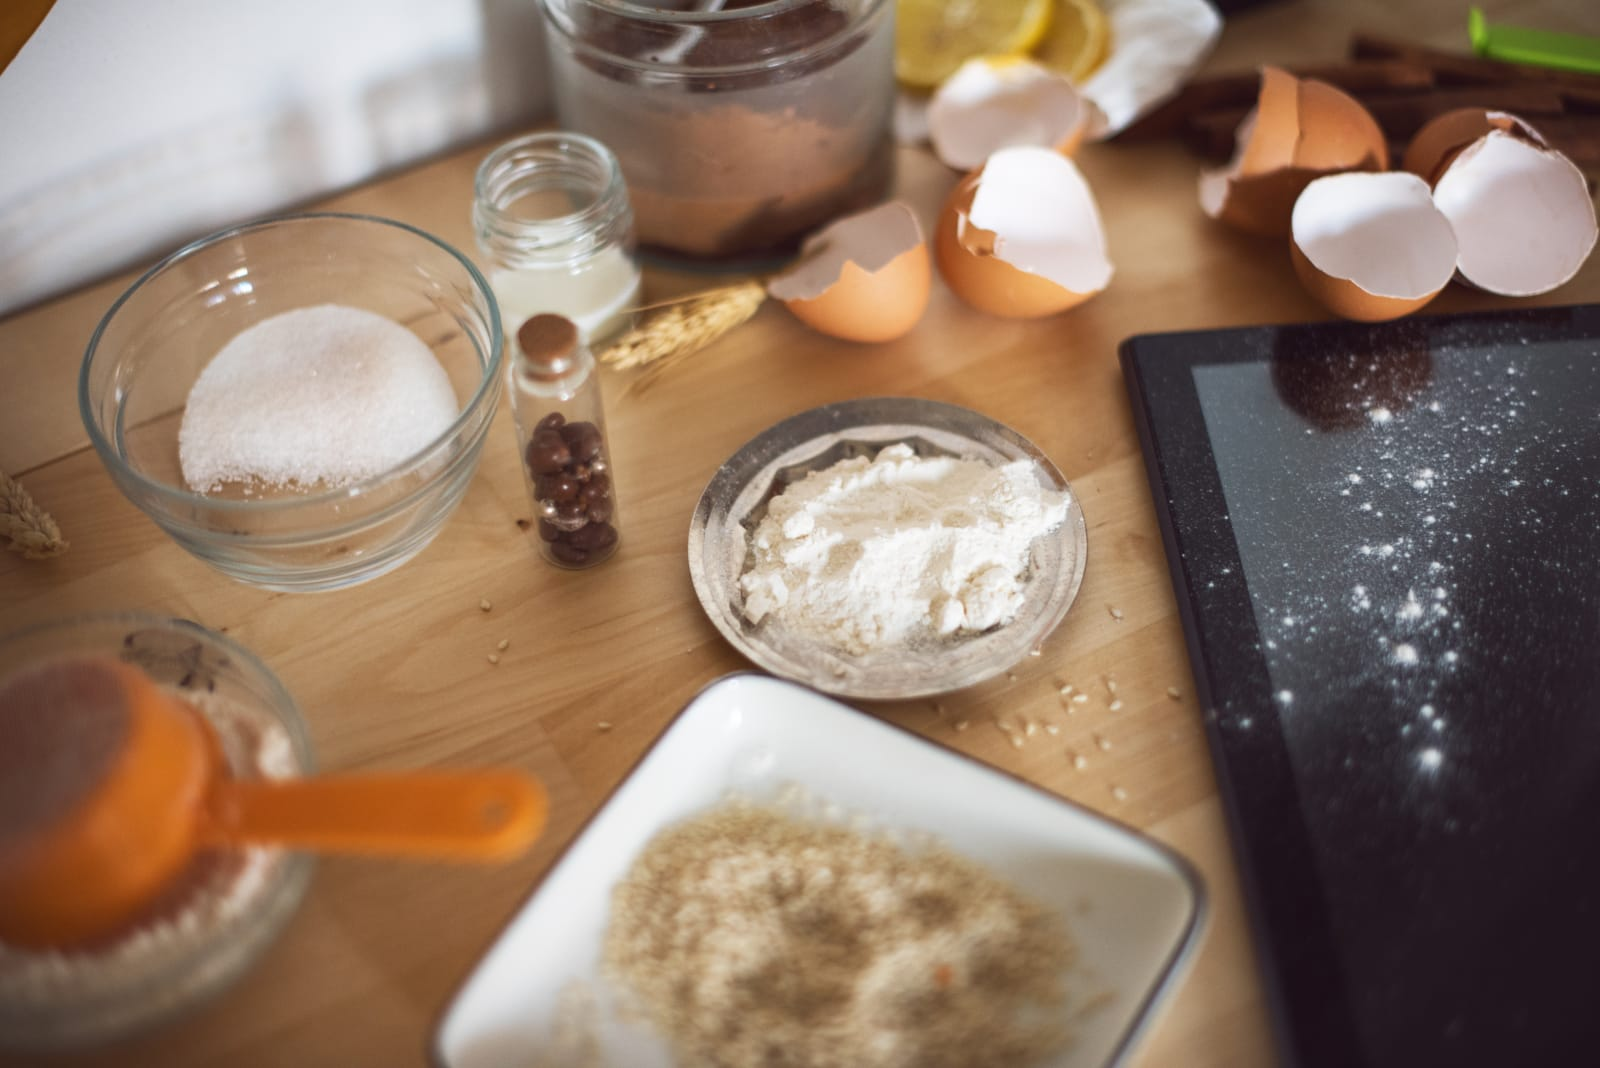 Baking ingredients on messy table